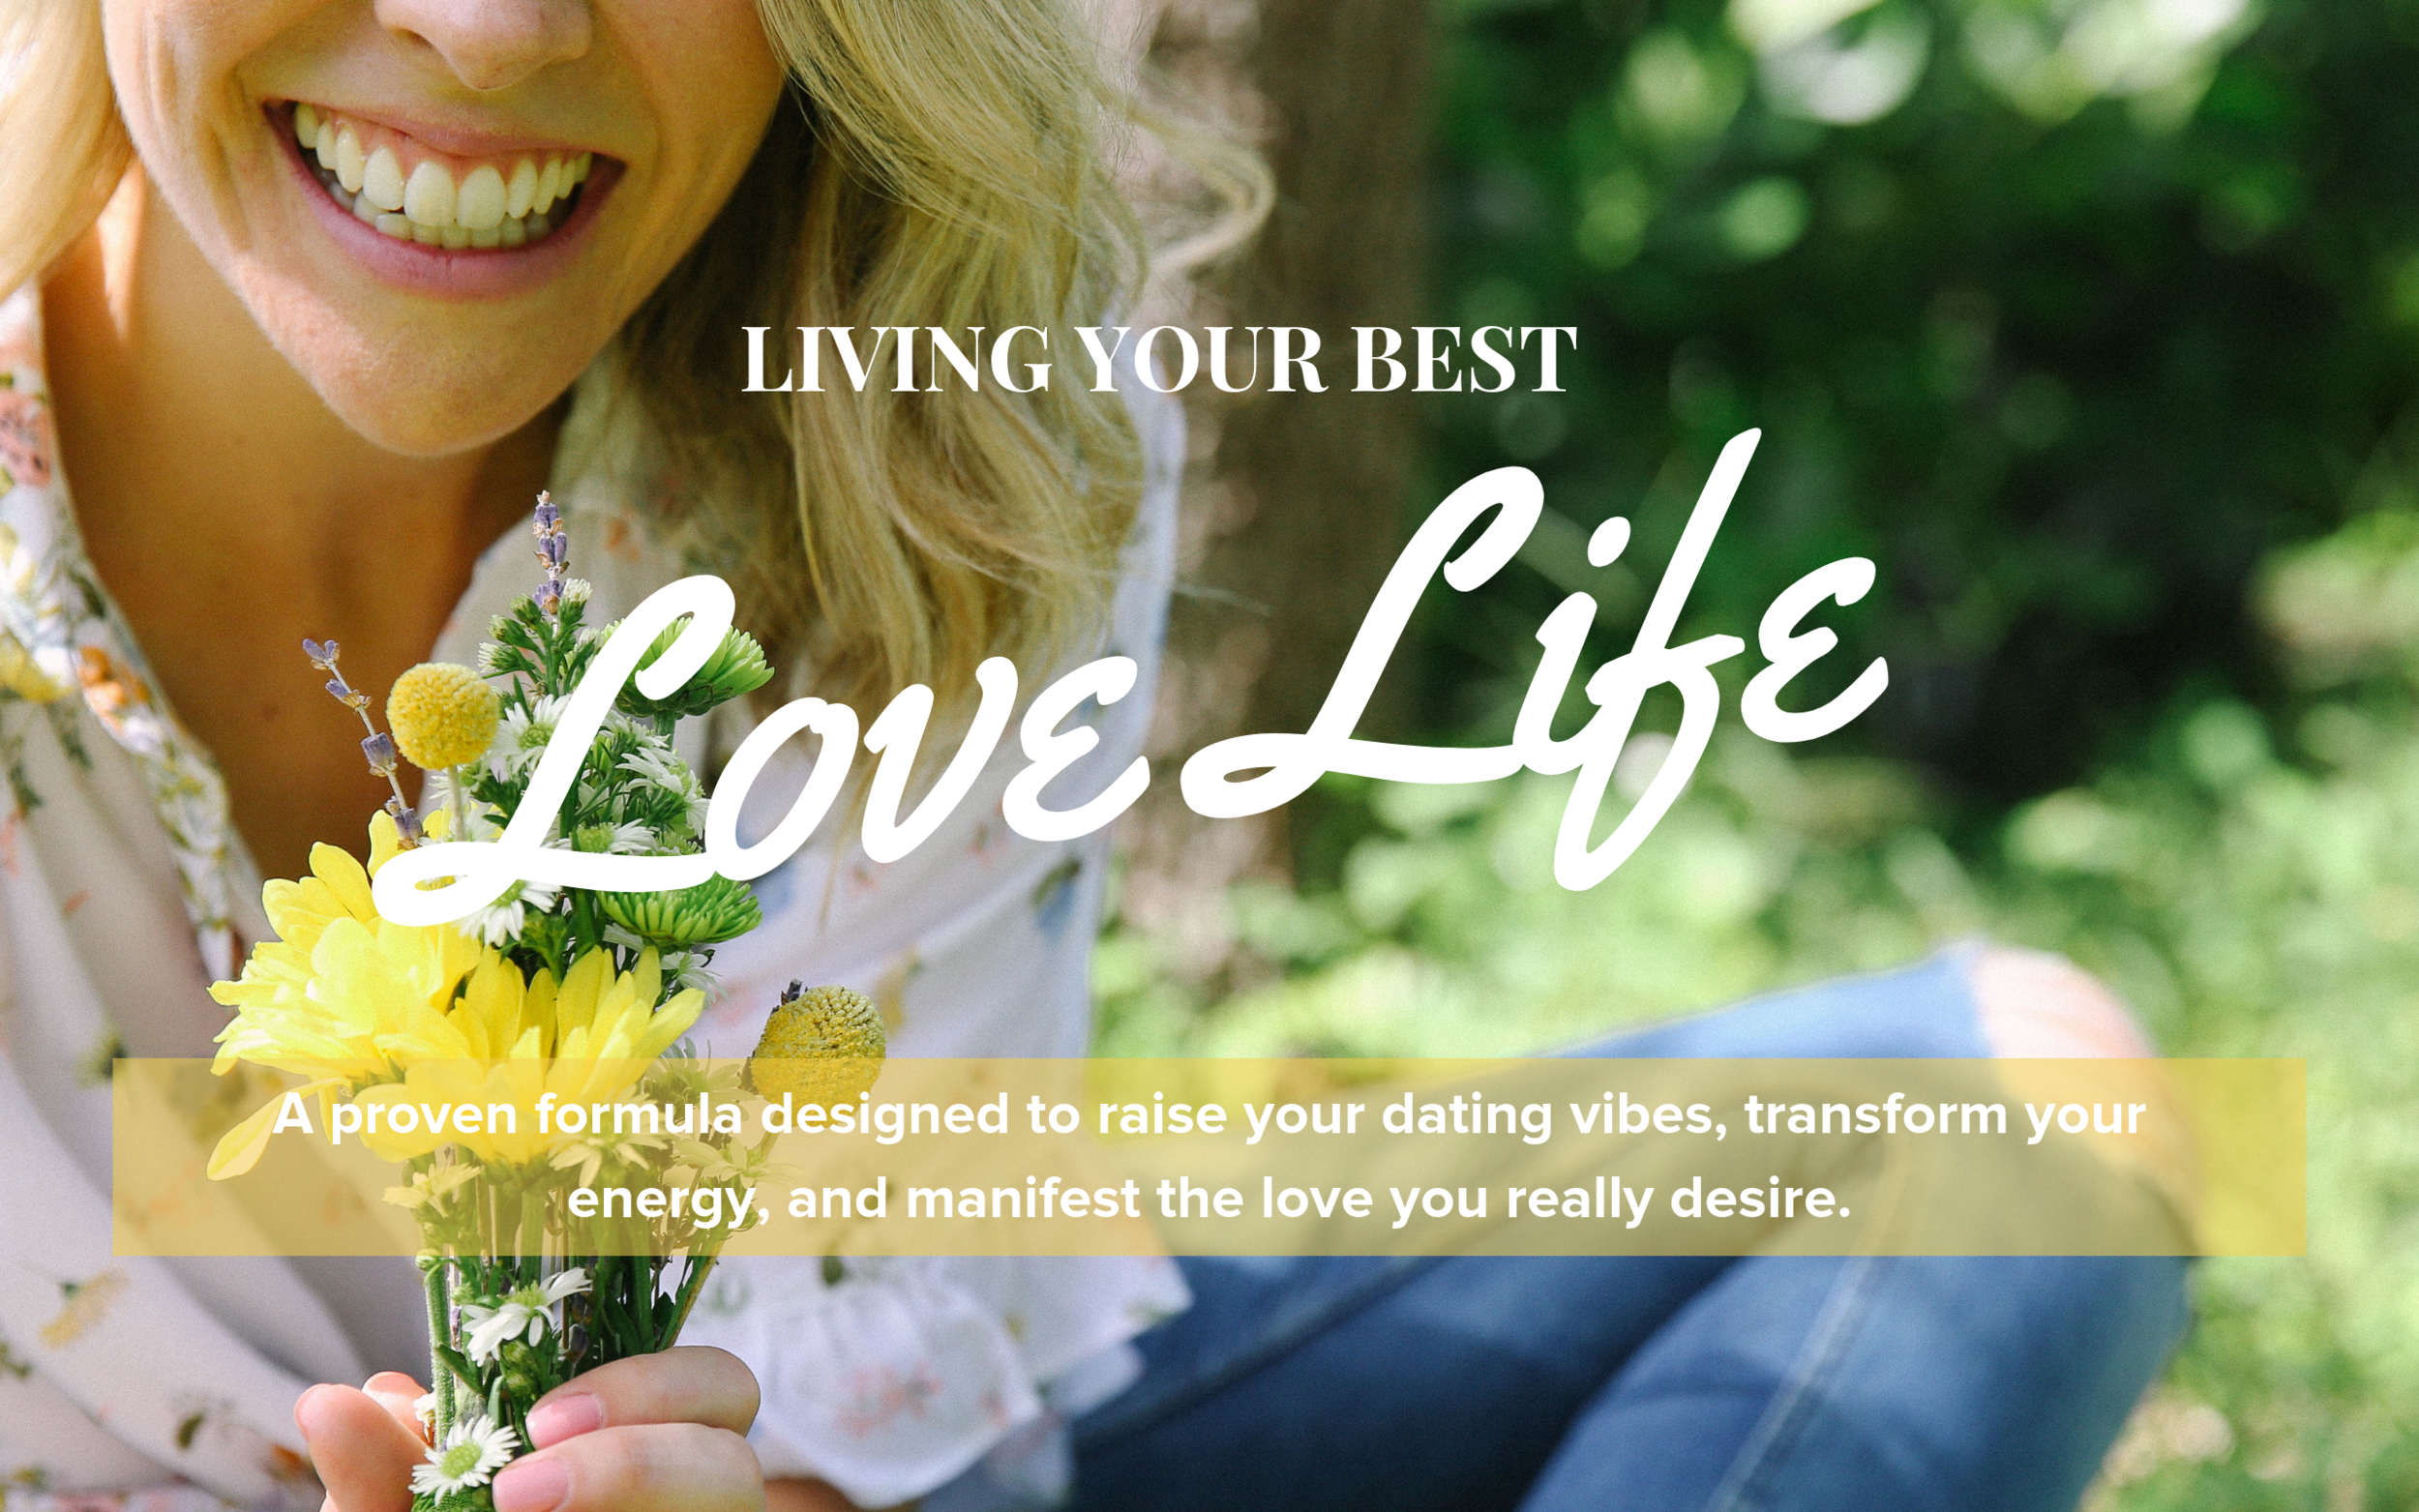 nikki-novo-living-your-best-love-life-intuitive-relationship-coach-course.png